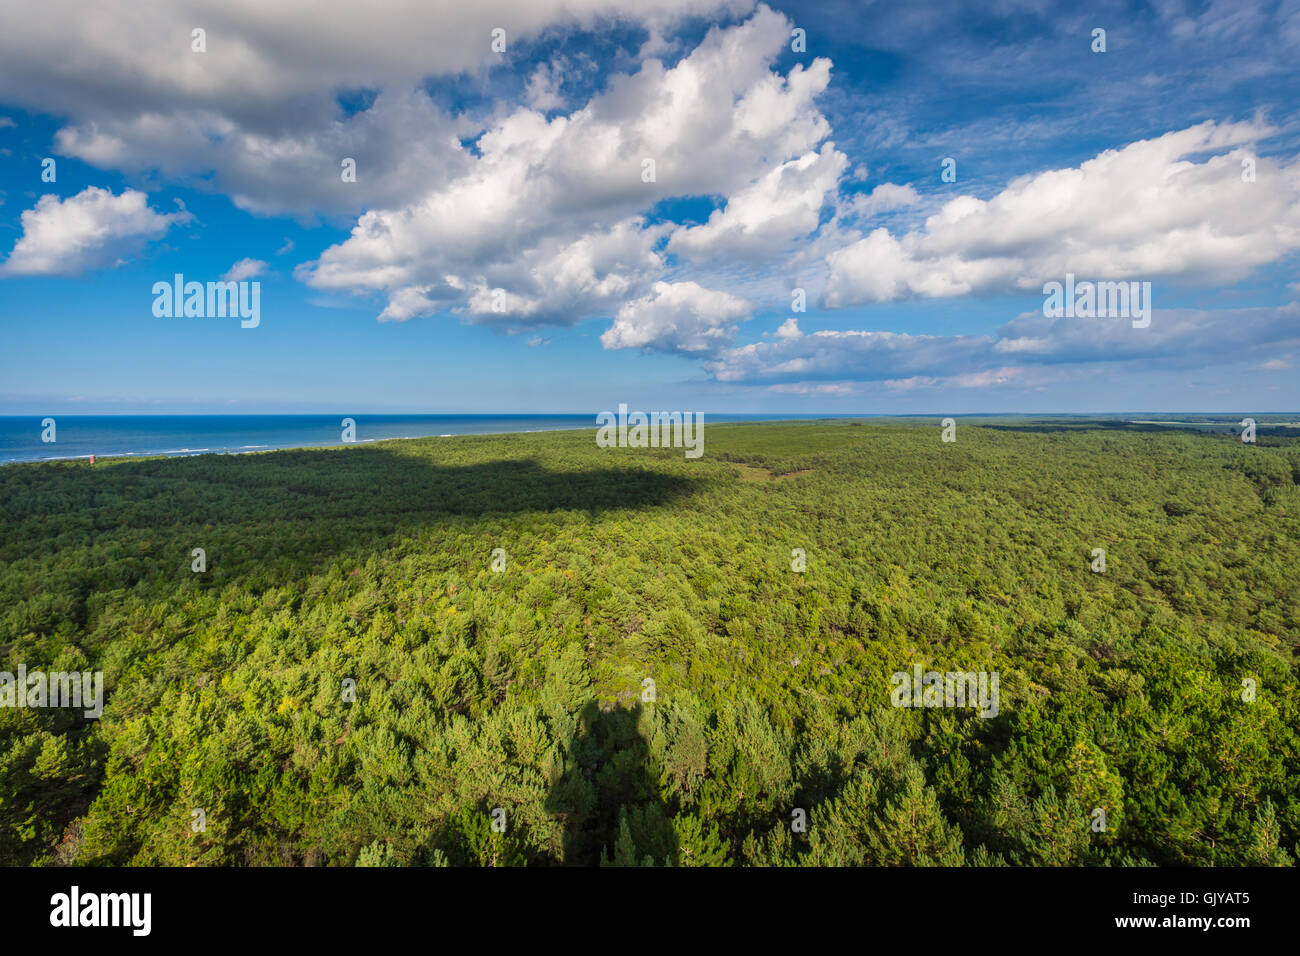 Top view of coniferous forest on the Baltic Sea coast, Poland - Stock Image